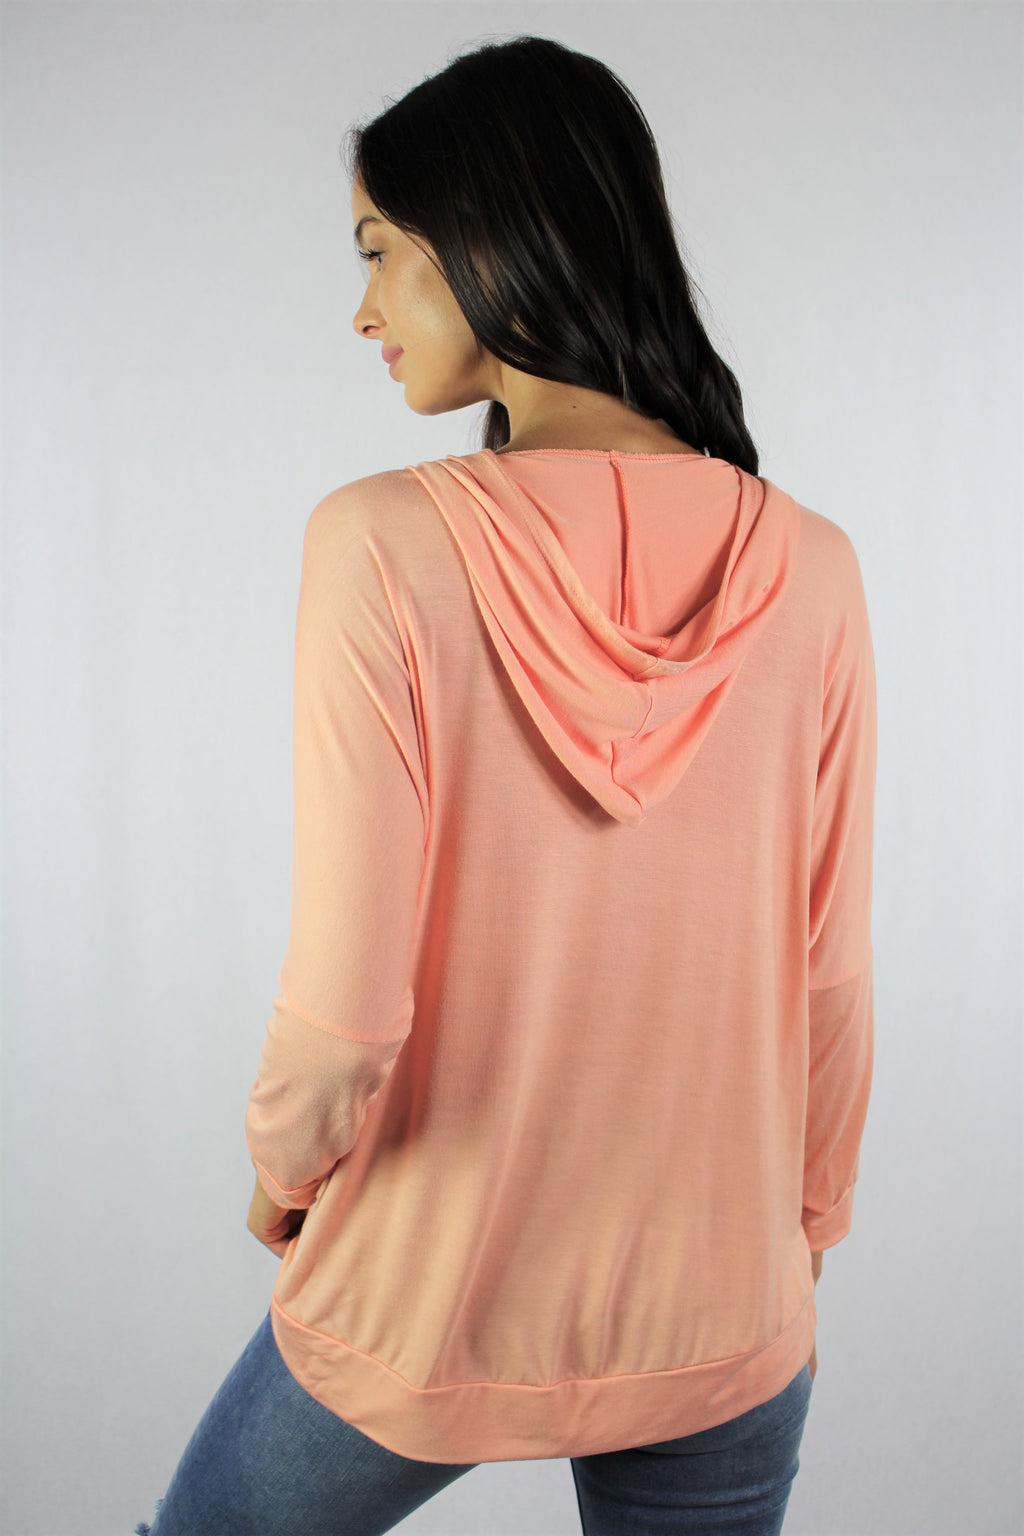 Women's Long Sleeve Top with Hoodie *